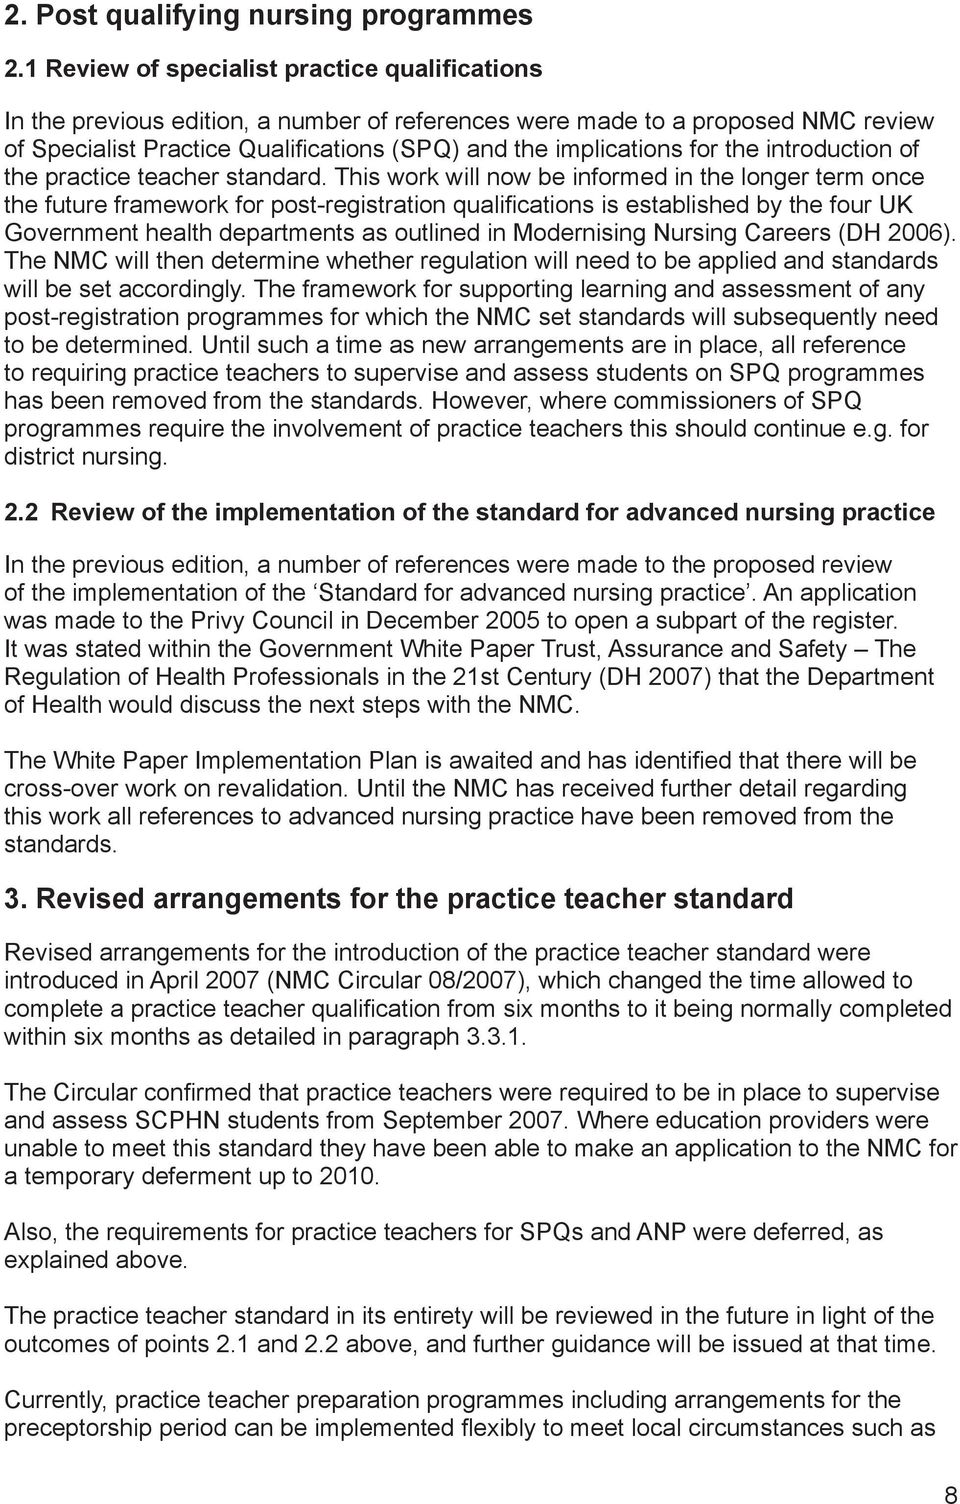 the introduction of the practice teacher standard.